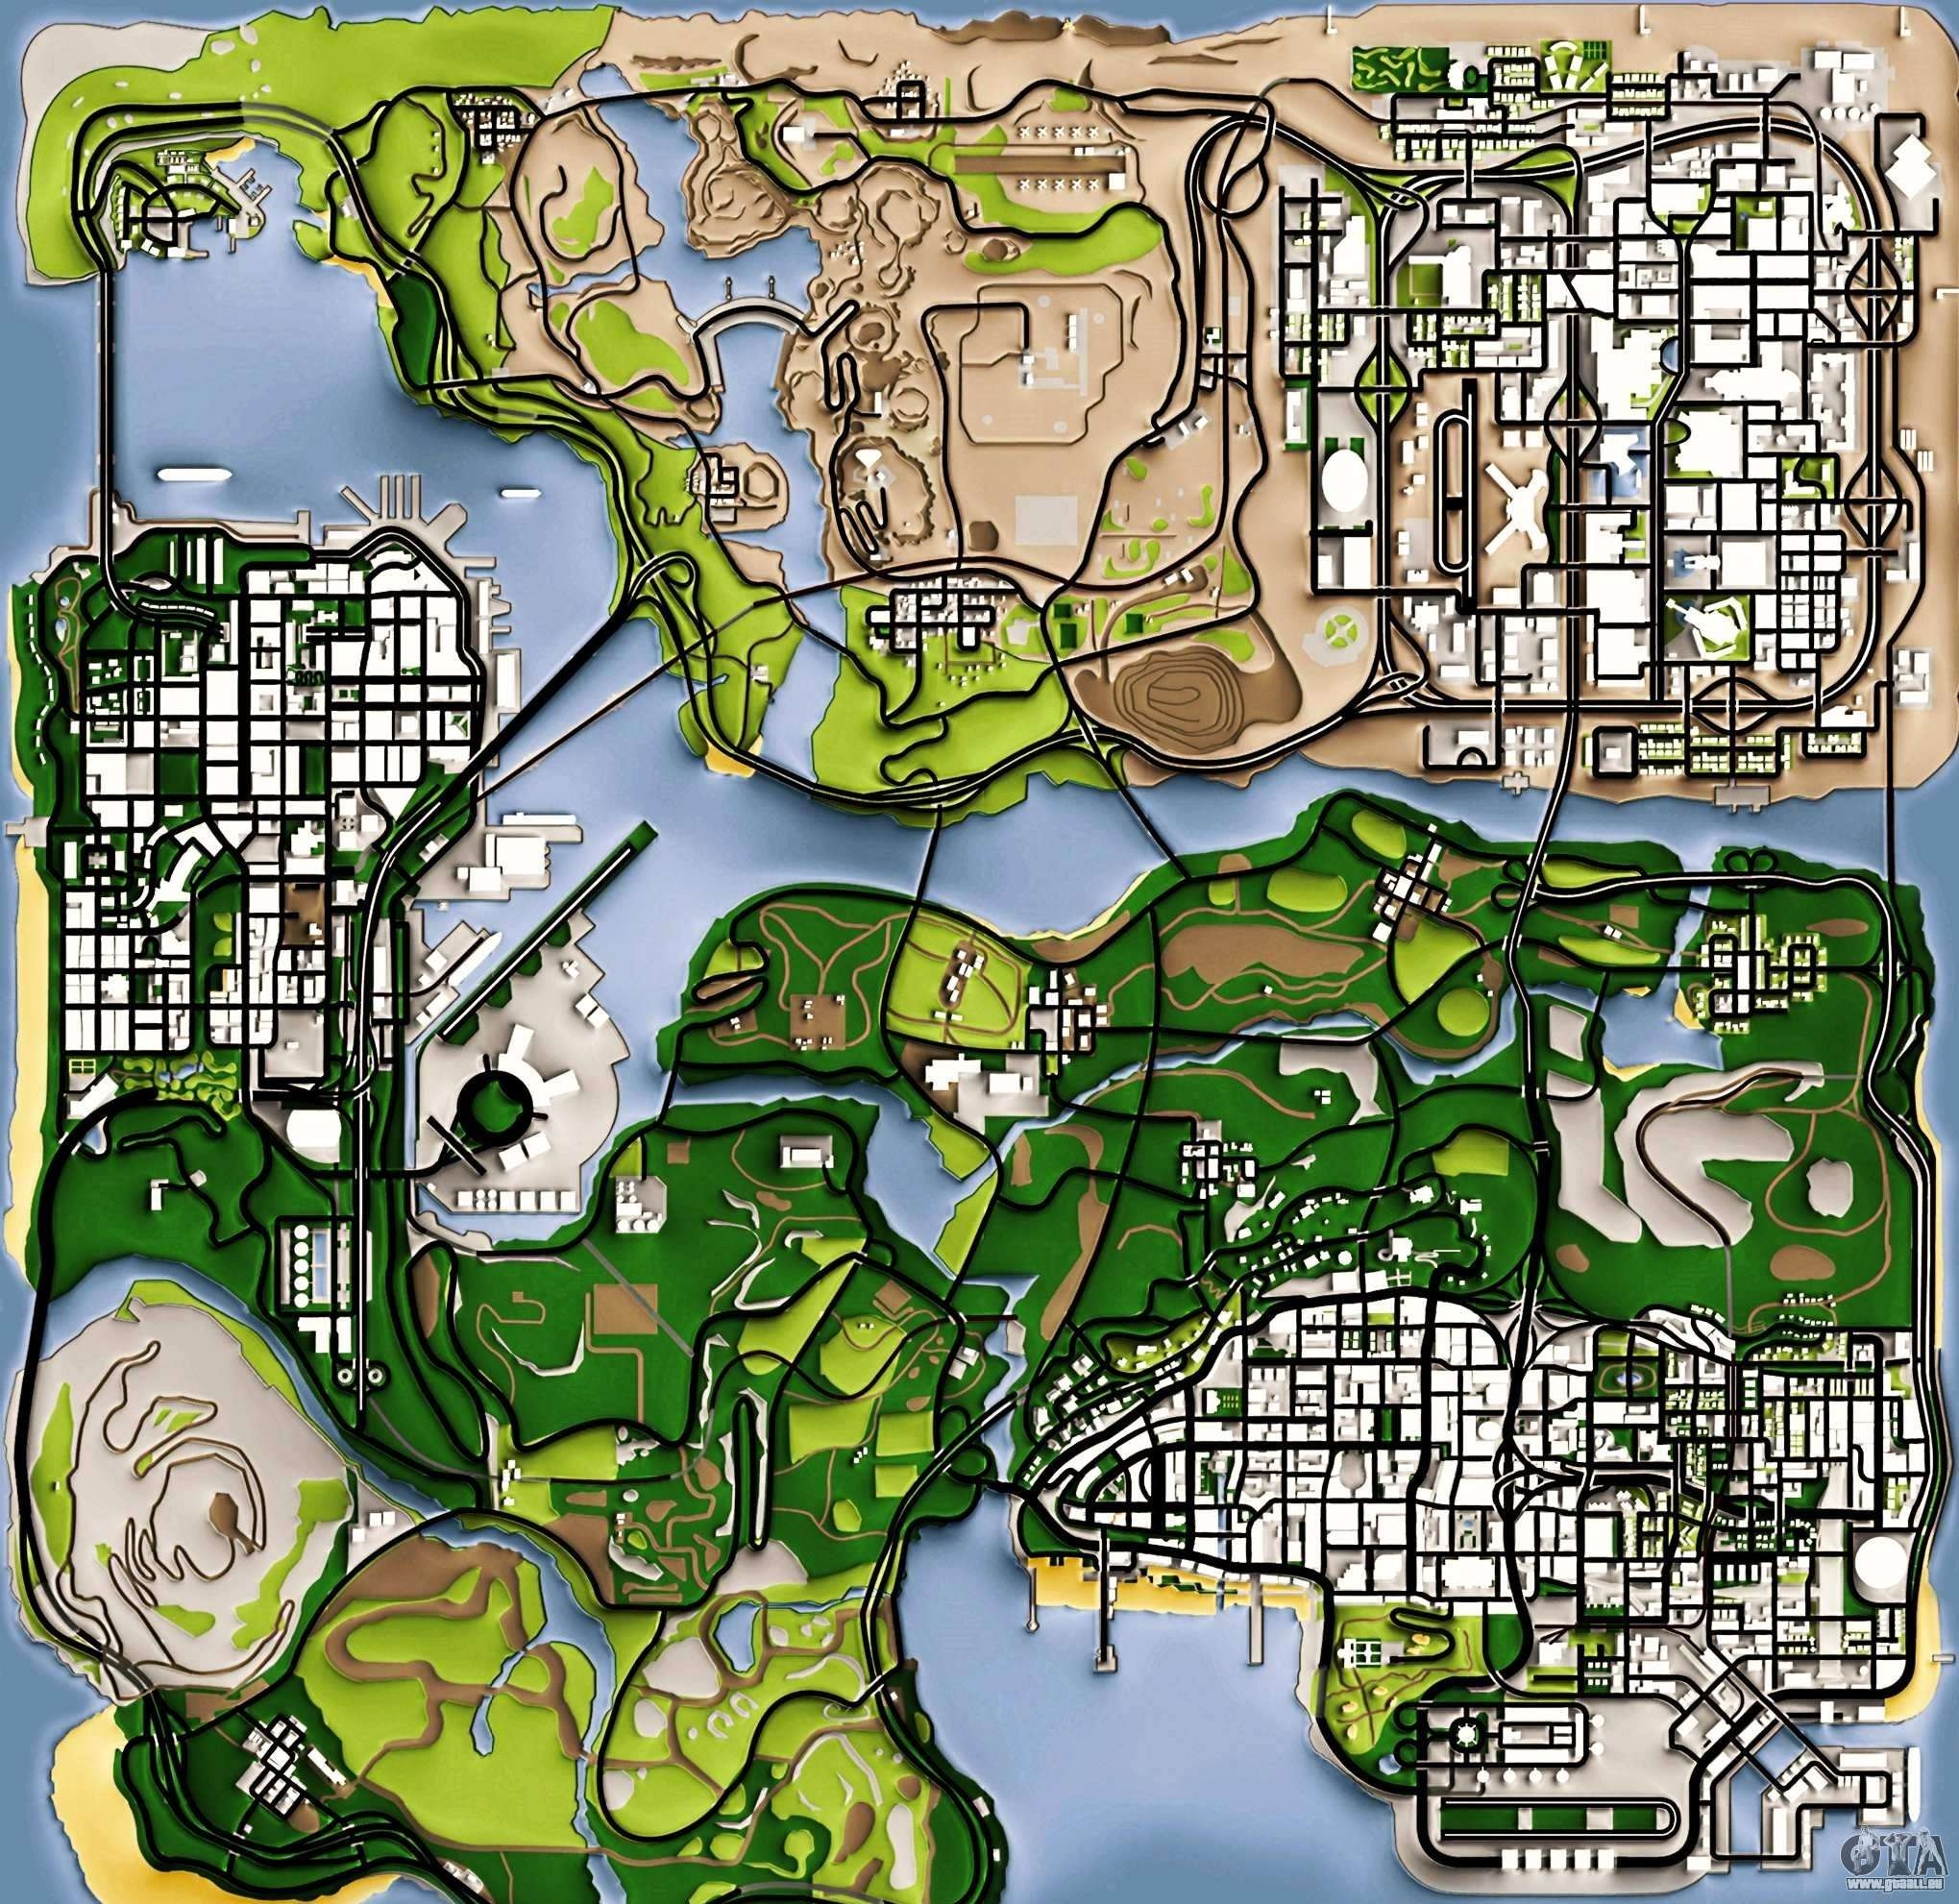 Gta San Andreas Karte.Remaster Map Full Version Für Gta San Andreas